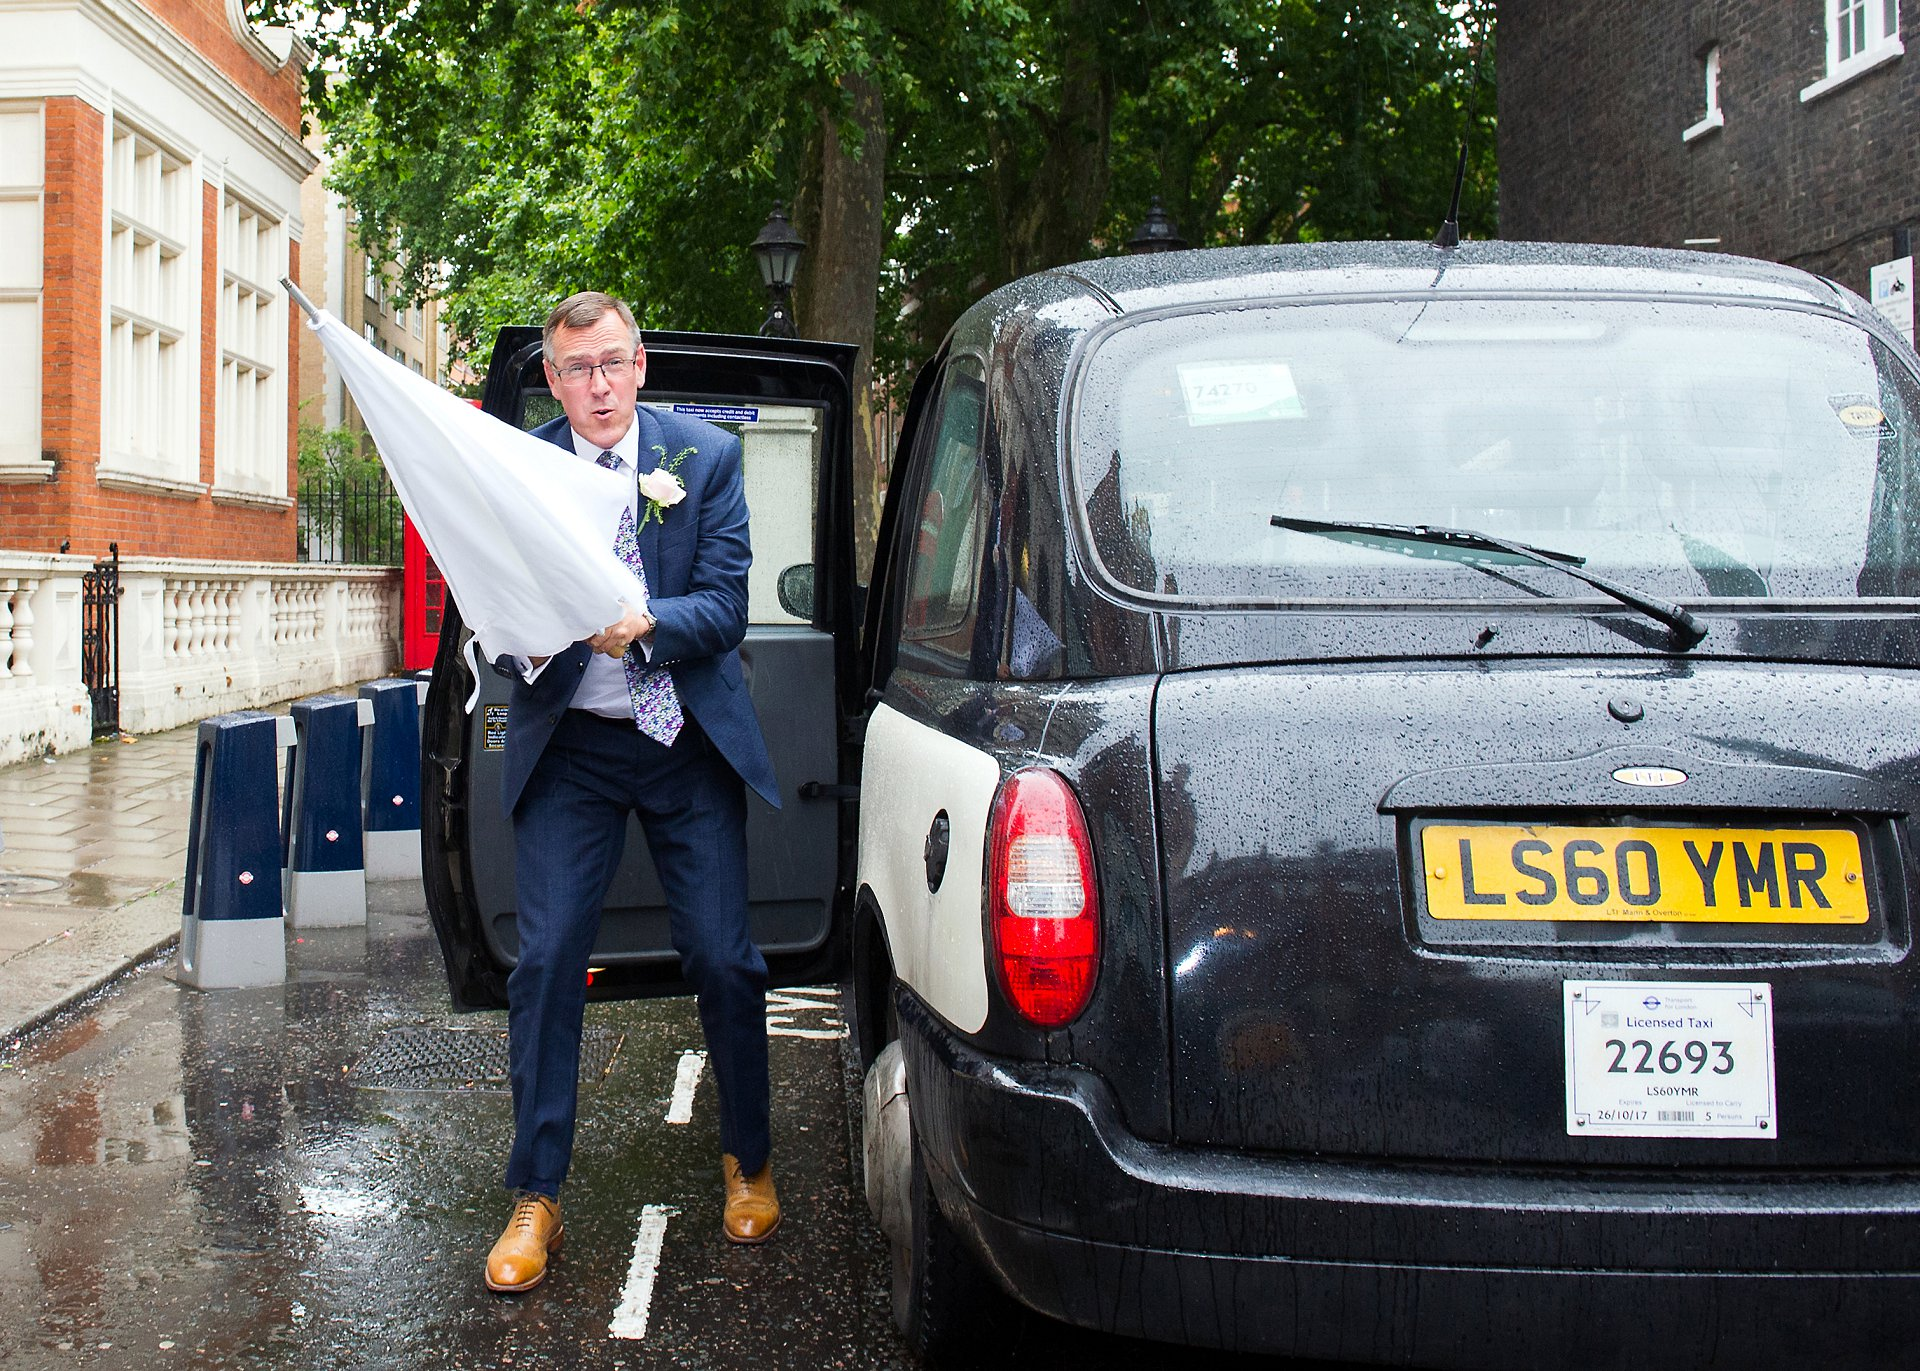 london black cab wedding photographer a groom exits with umbrella in mayfair